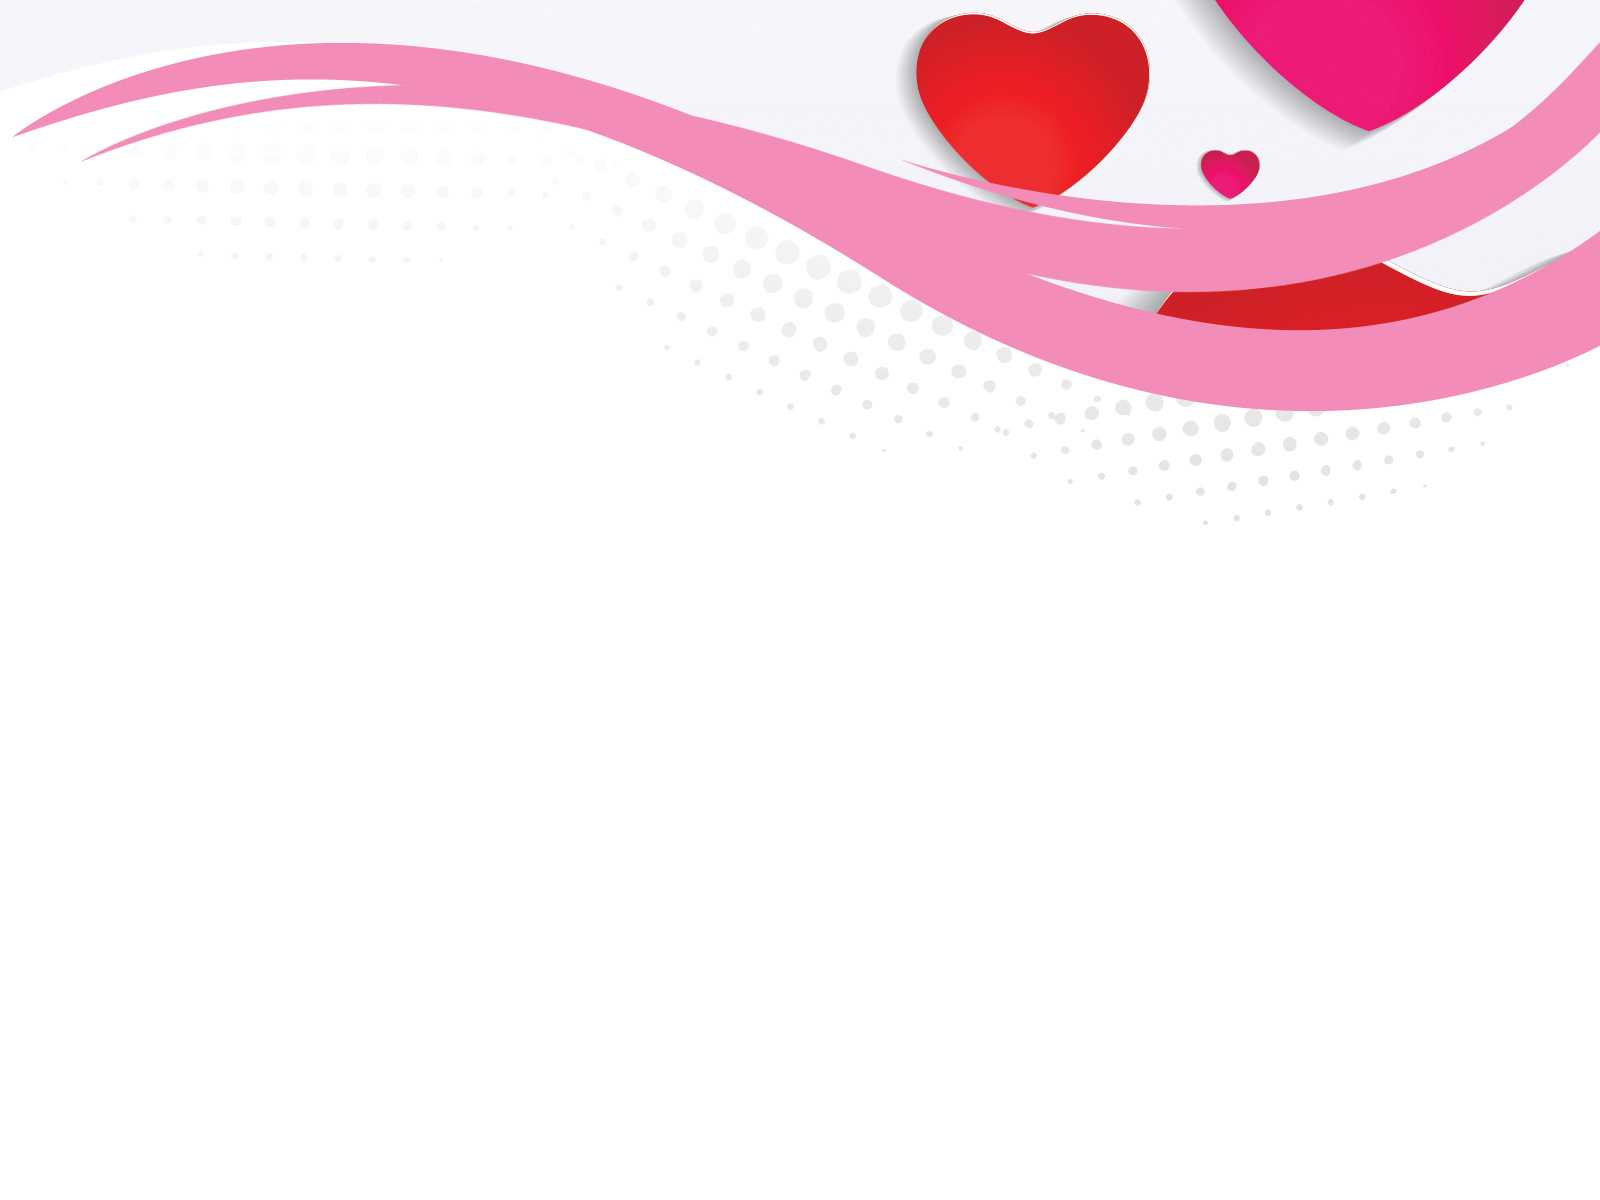 Valentines Day Powerpoint Templates - Love, Red - Free Ppt in Valentine Powerpoint Templates Free